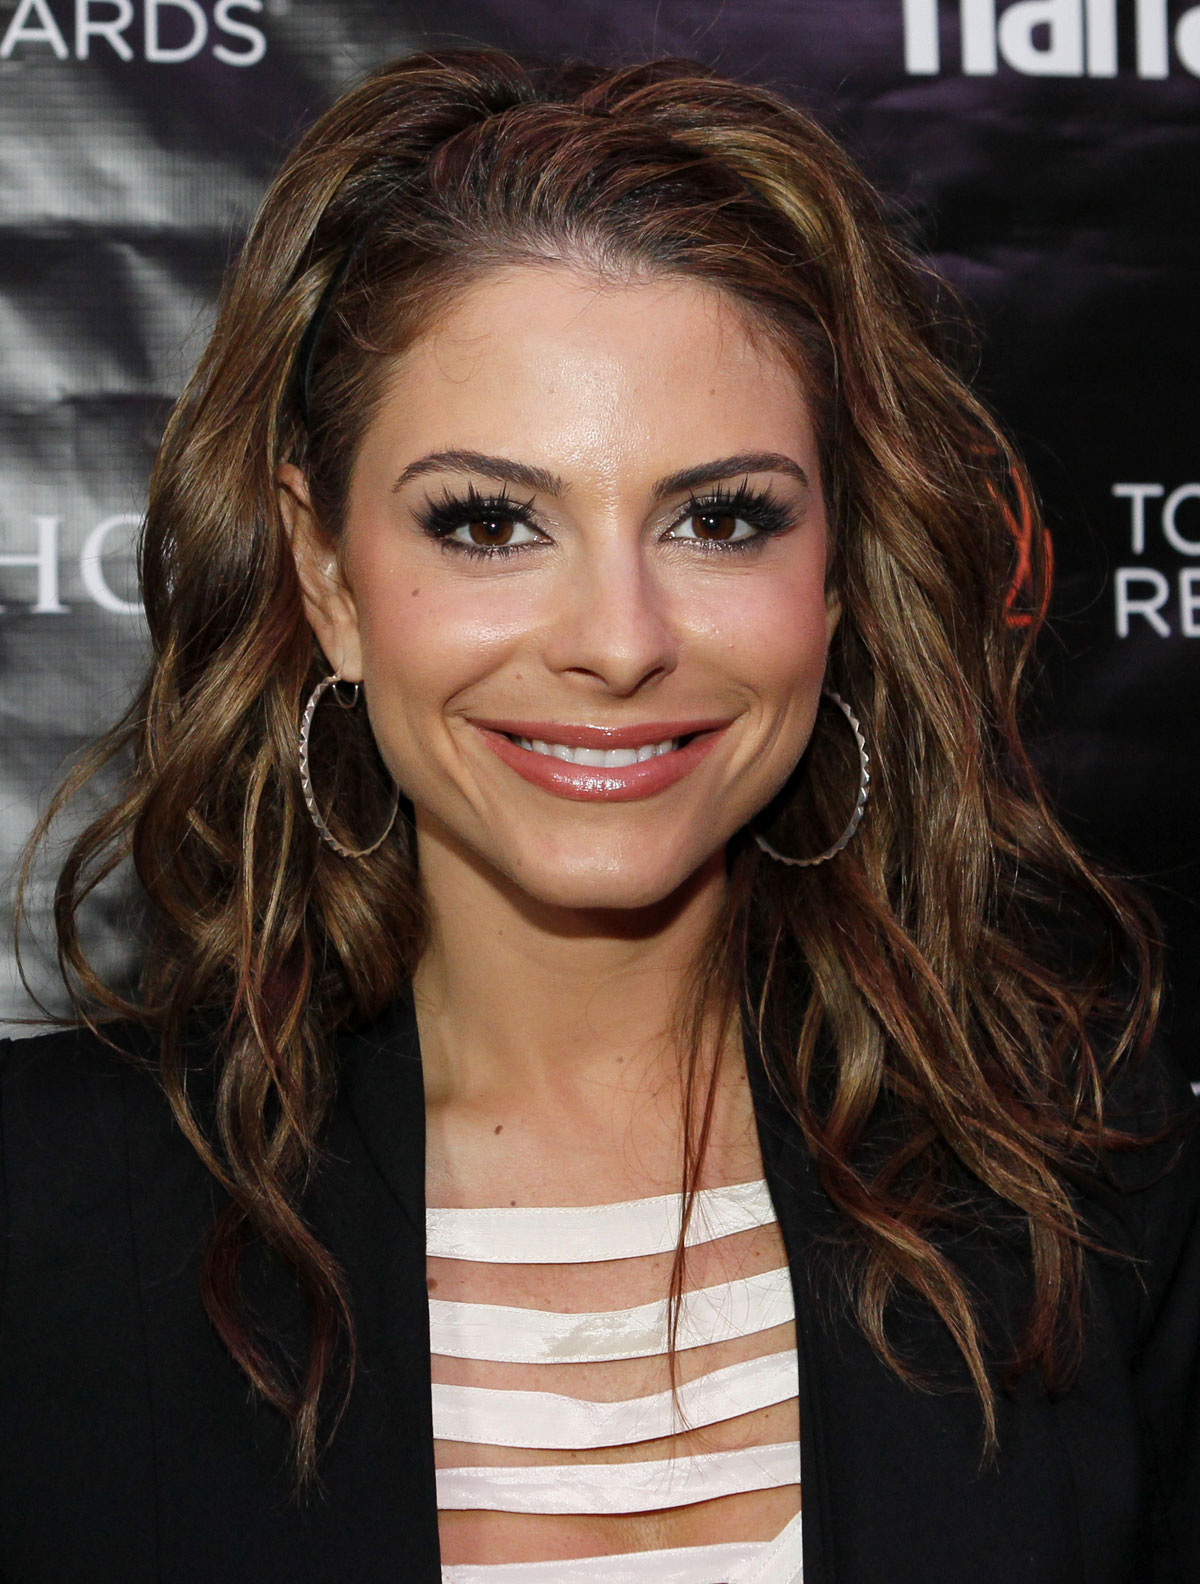 Maria Menounos at Escape to Total Rewards at Gotham Hall in New York